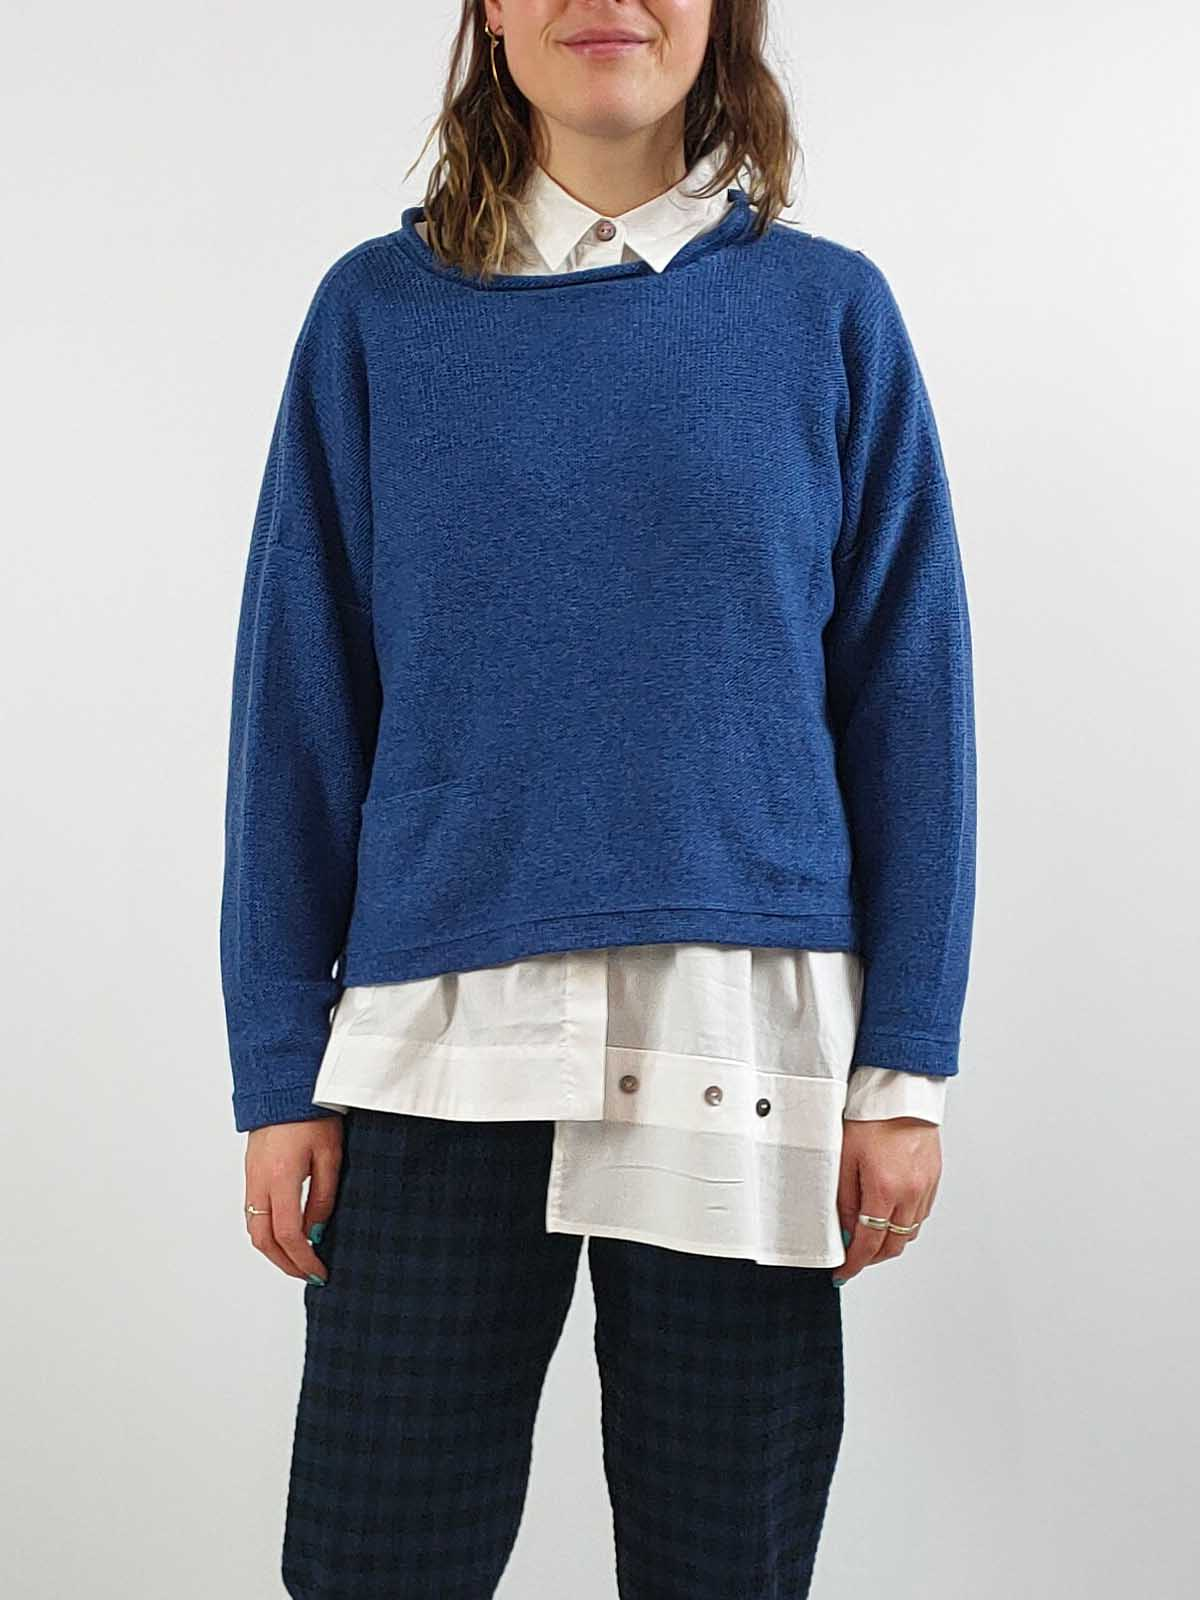 Quernstone [BRAVO] Jumper - 2 Colours